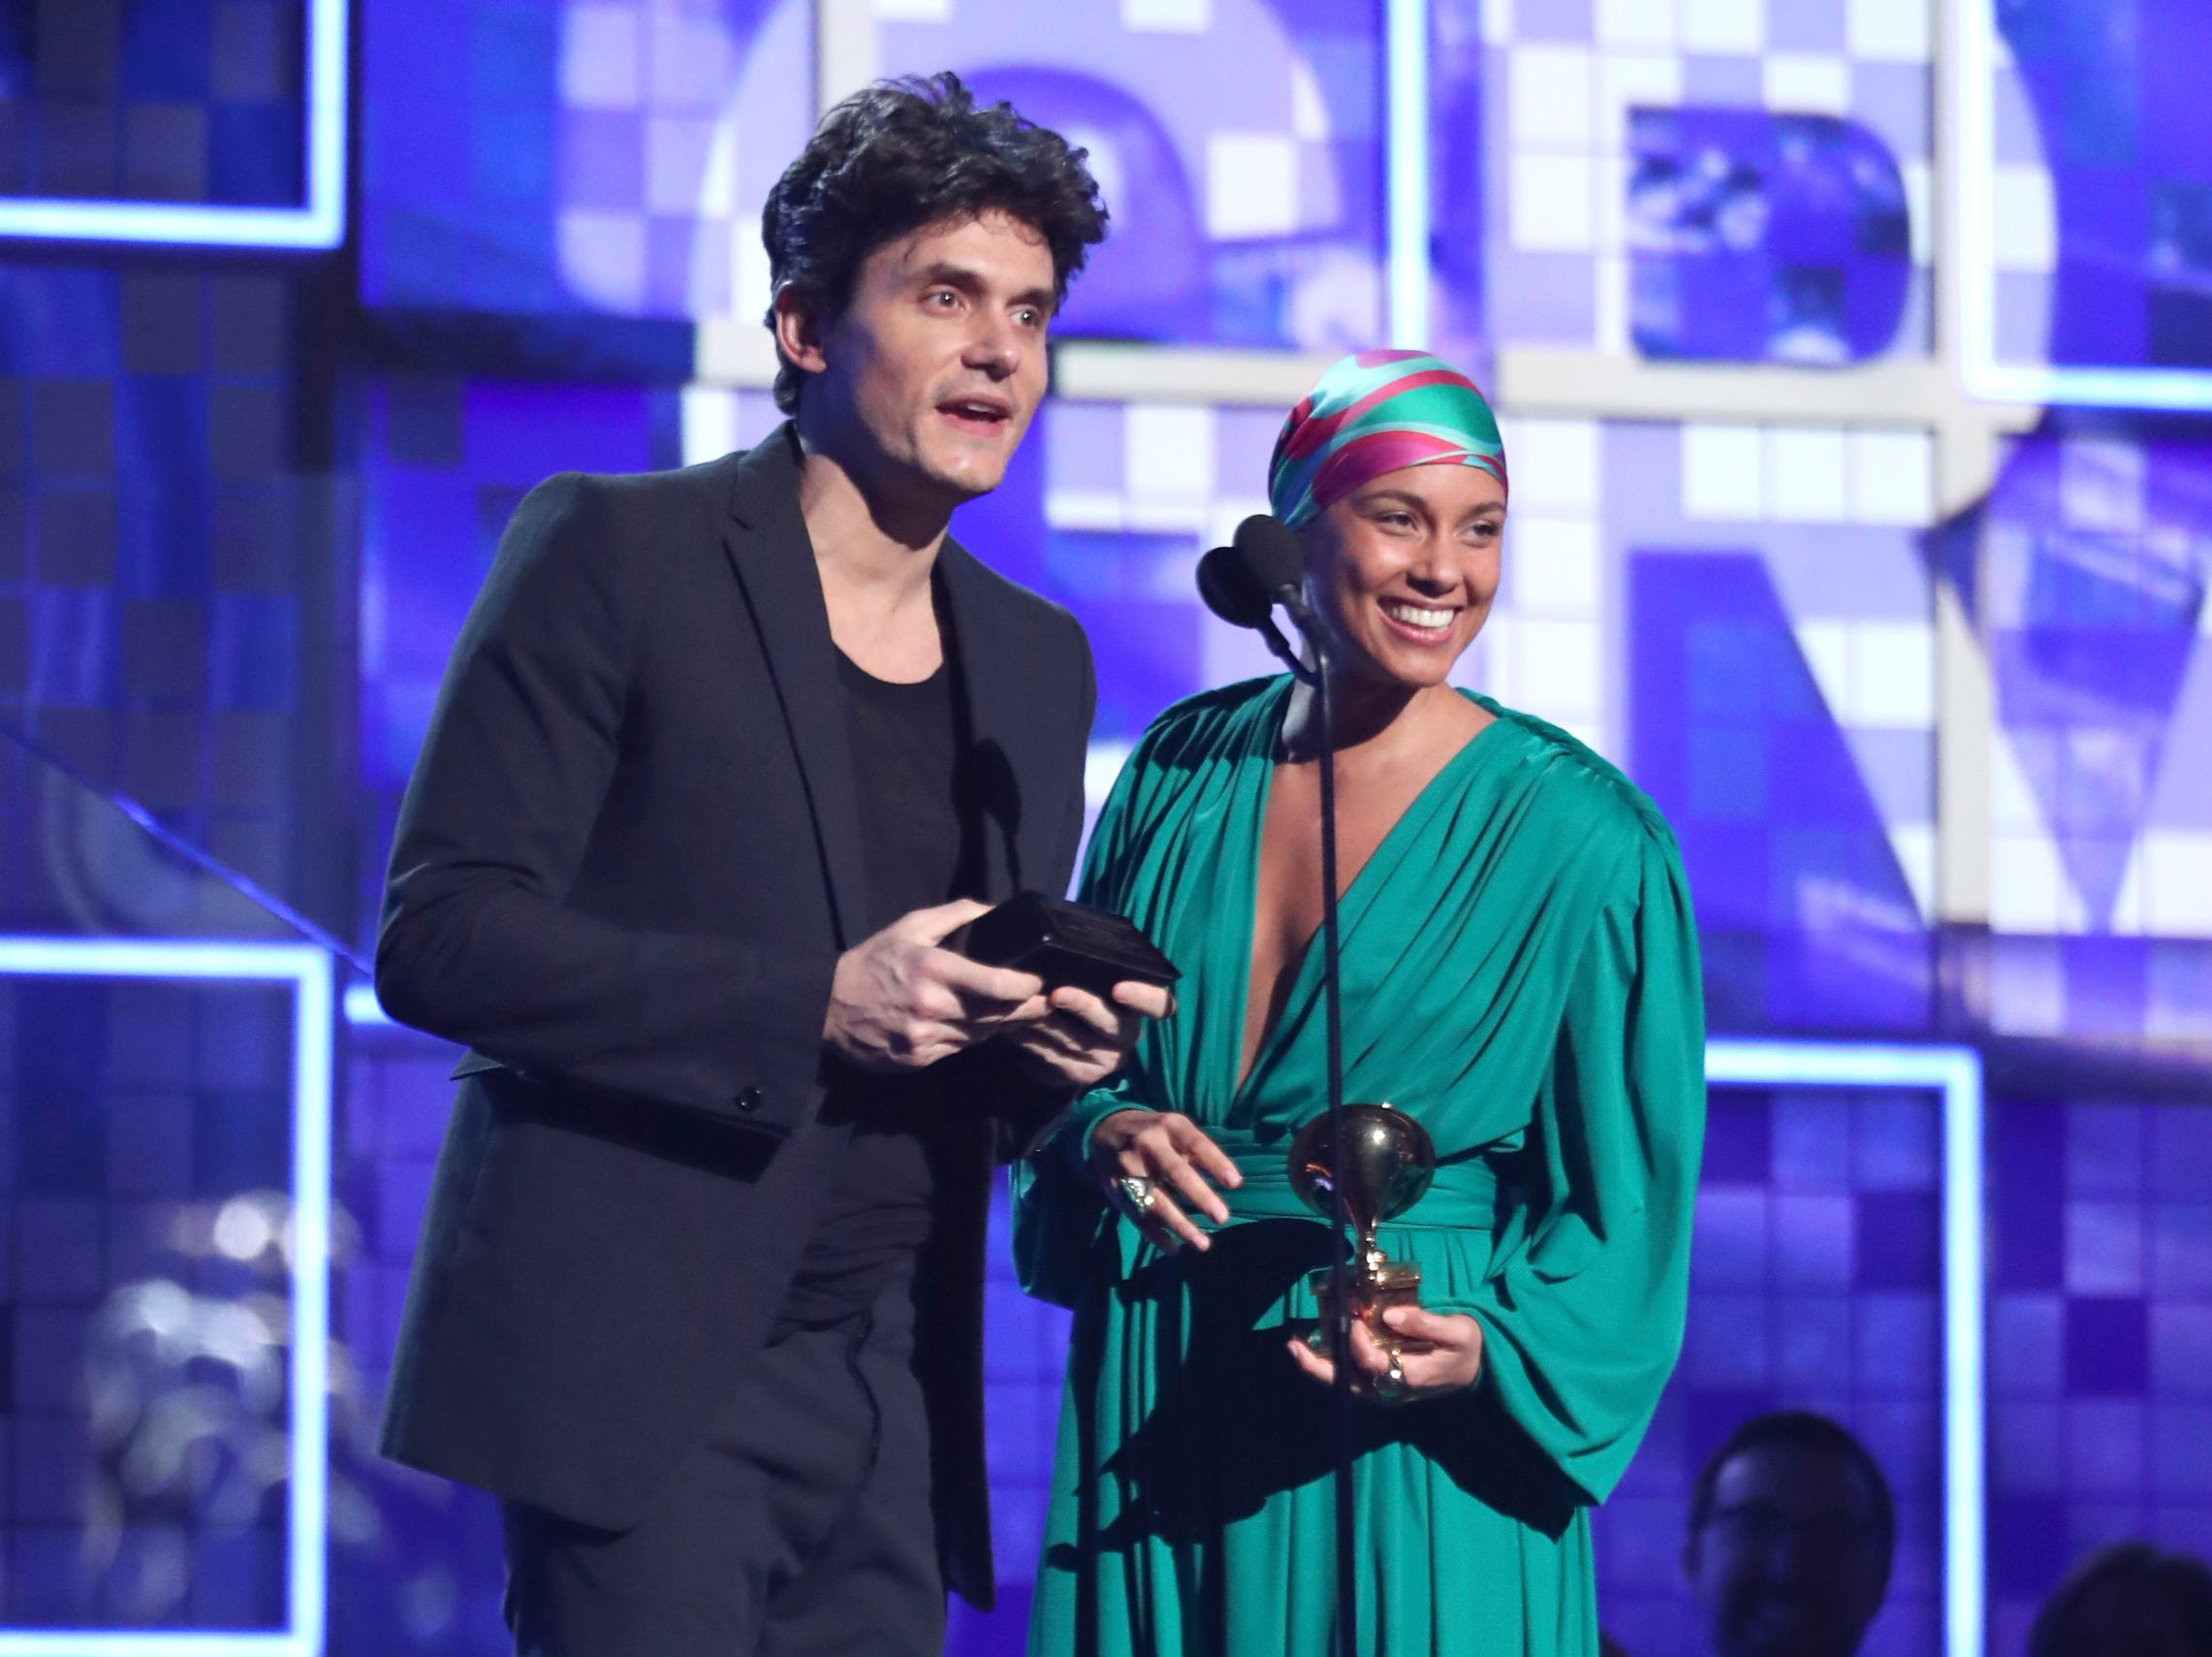 John Mayer, left, and Alicia Keys present the award for song of the year at the 61st annual Grammy Awards.